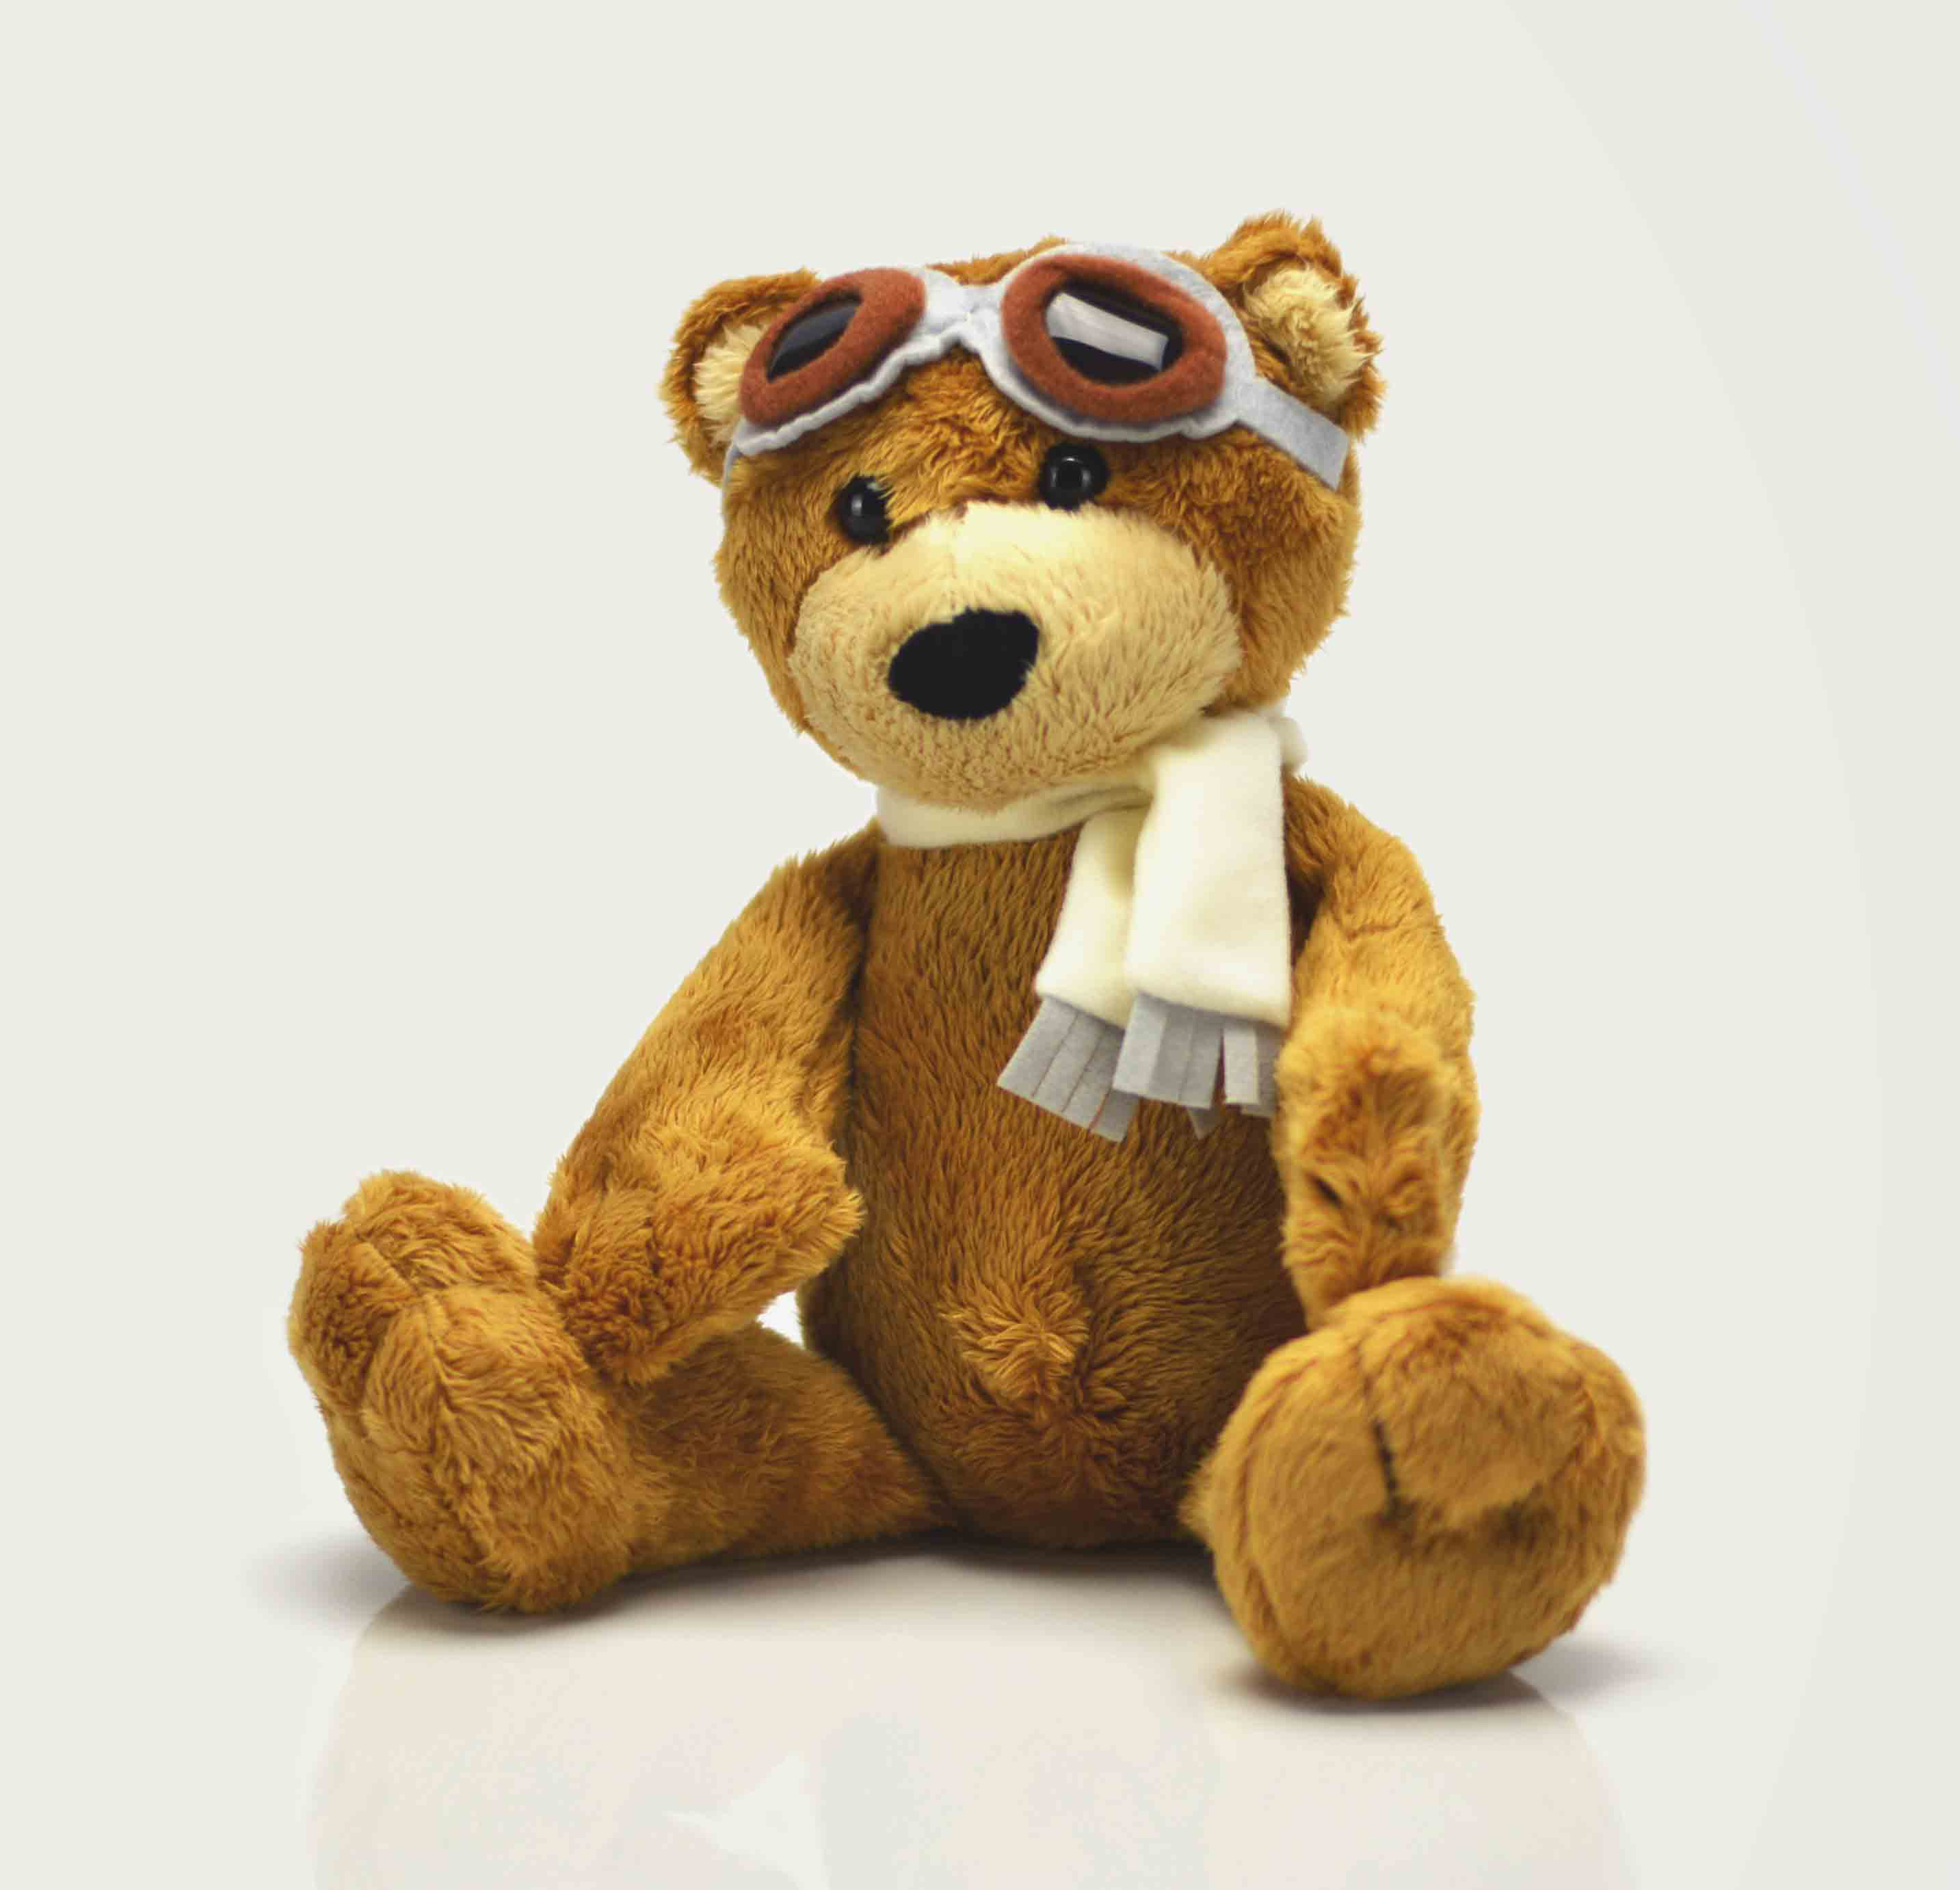 A stuffed brown teddy bear wearing goggles and a scarf